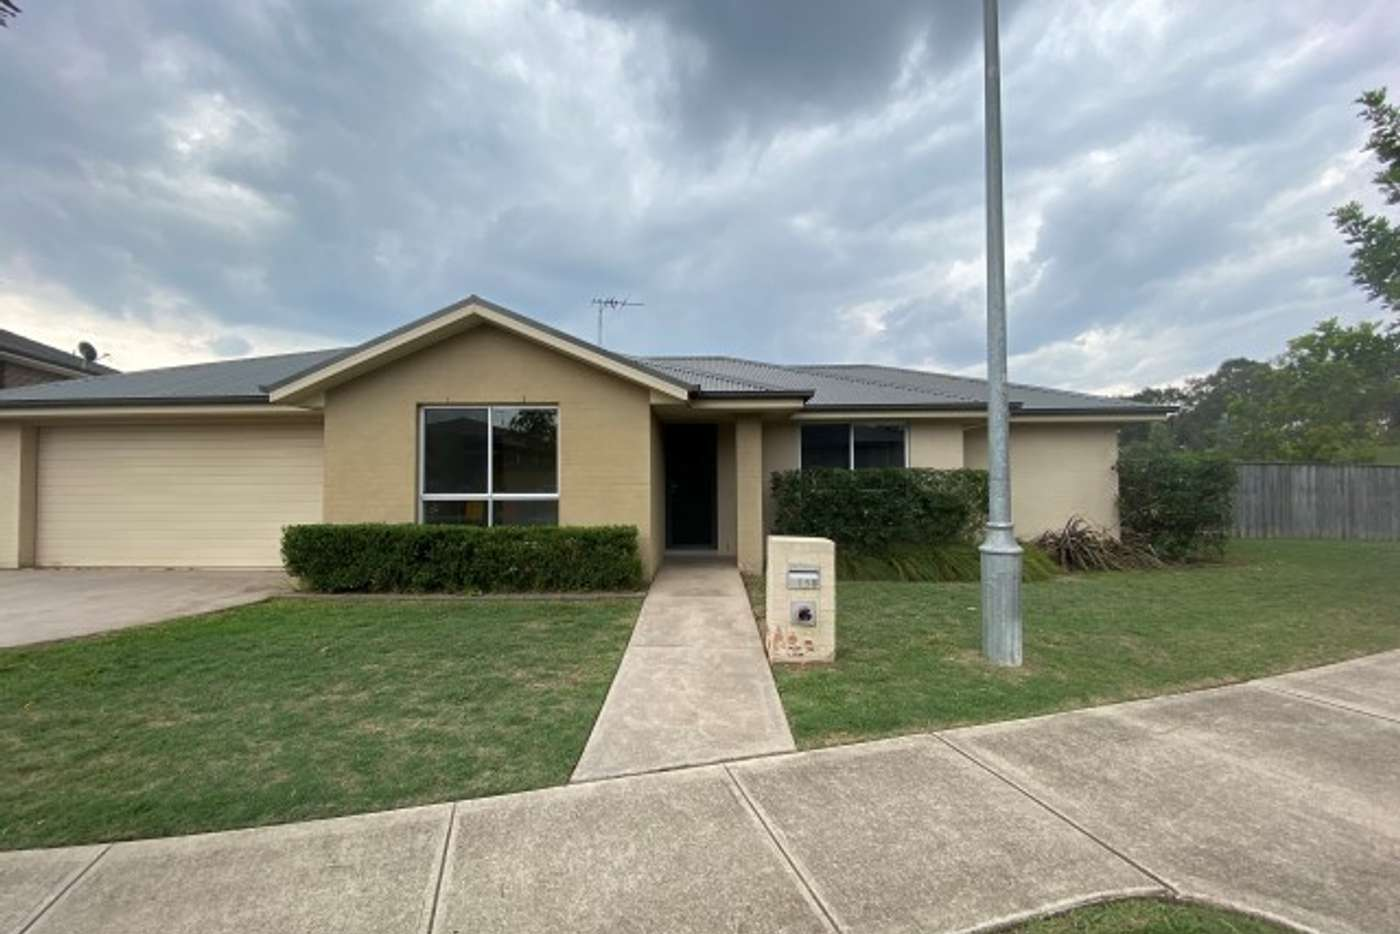 Main view of Homely house listing, 15 Larkin Street, Bardia NSW 2565